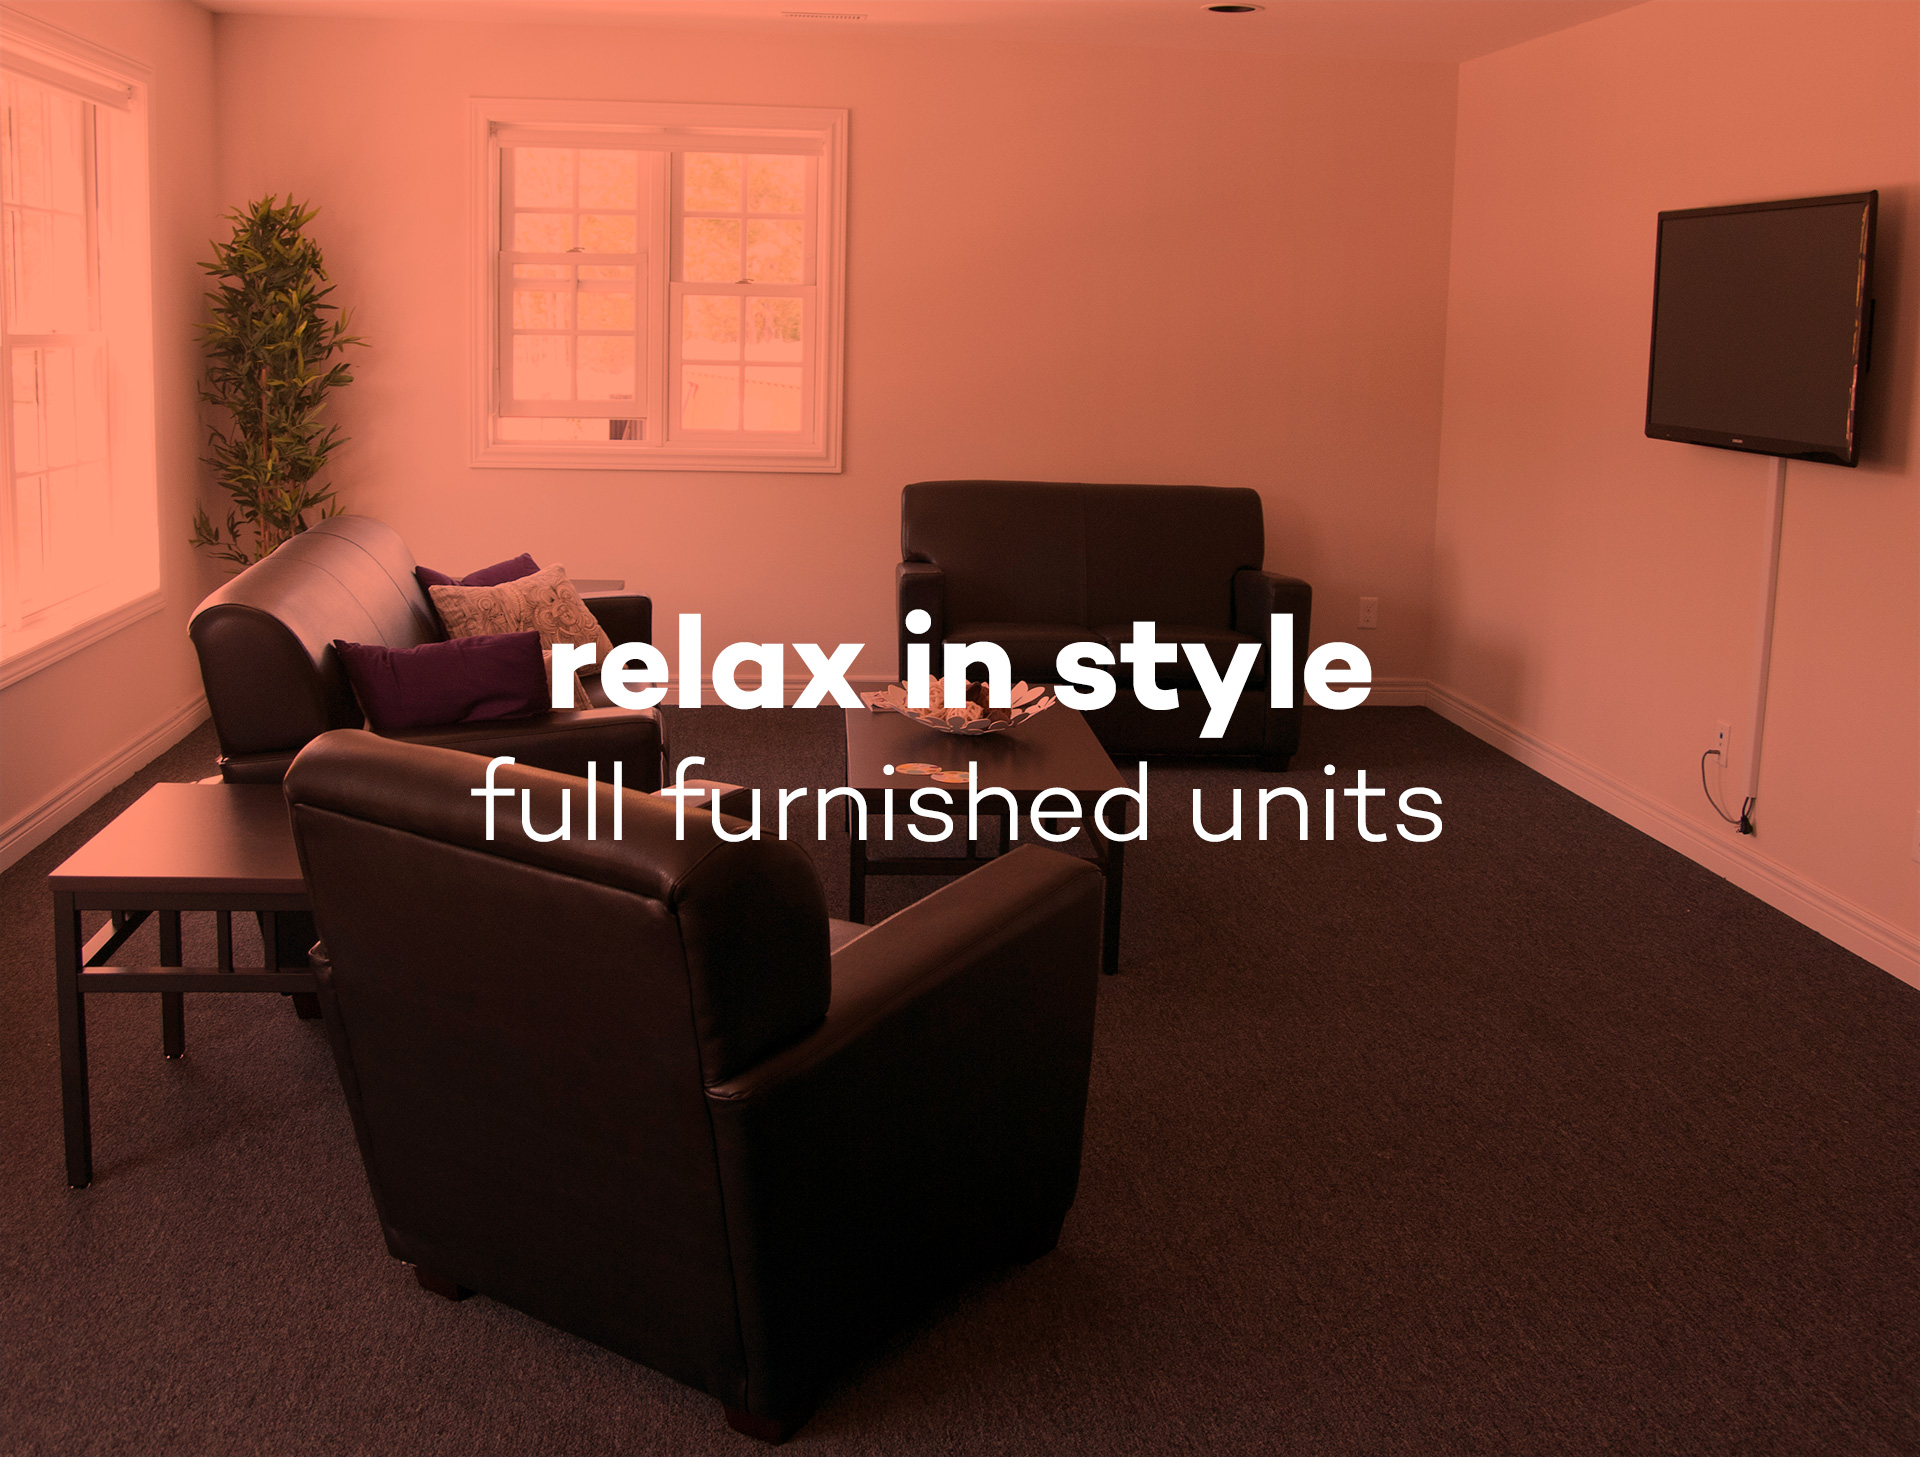 relax-in-style